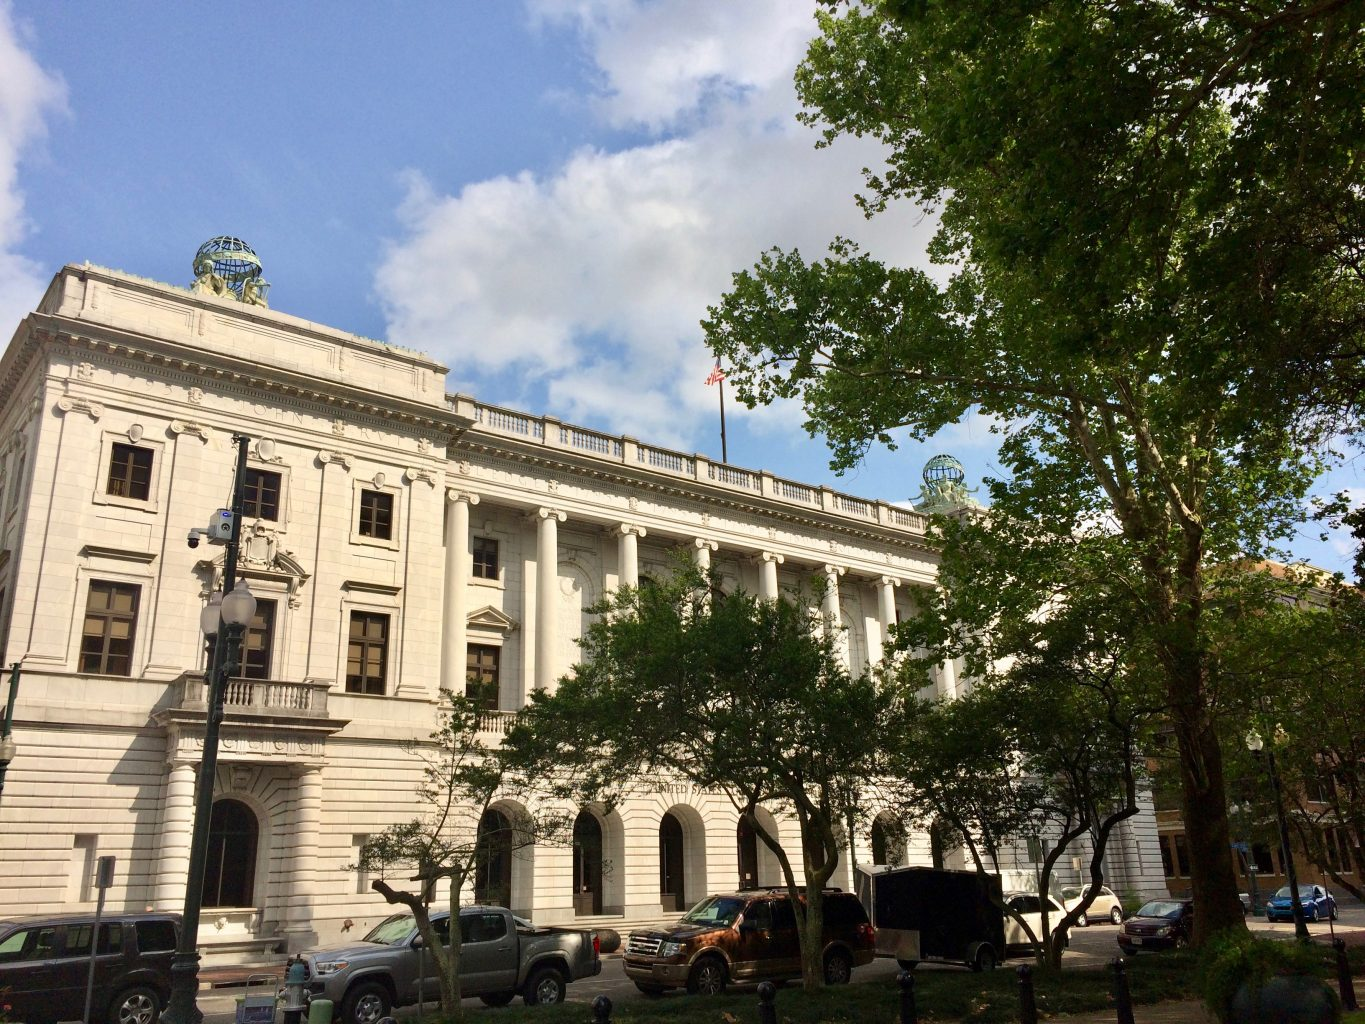 John Minor Wisdom building housing the Fifth Circuit Court of Appeals in New Orleans